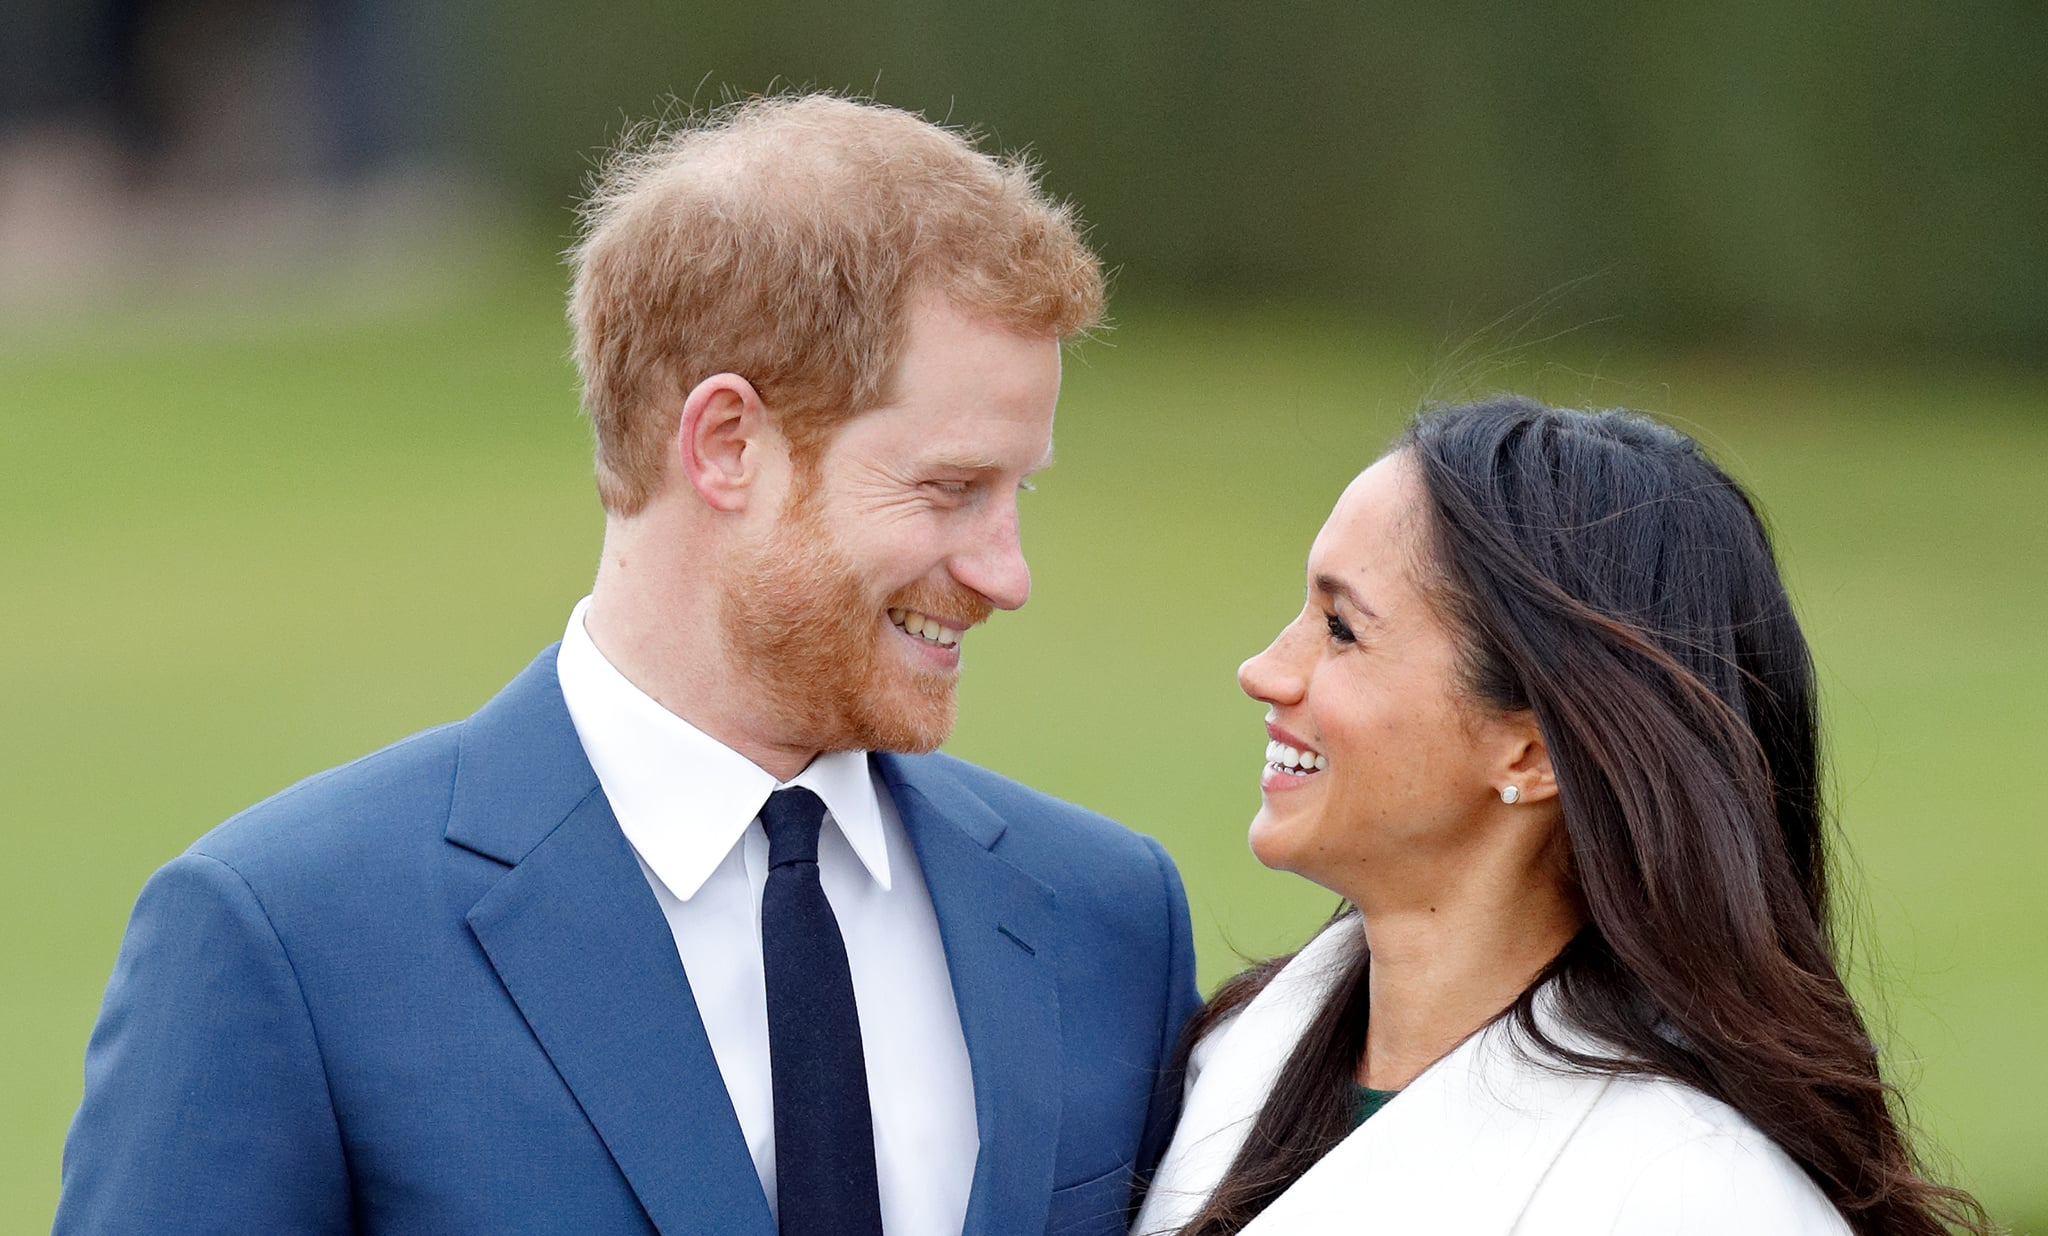 LONDON, UNITED KINGDOM - NOVEMBER 27: (EMBARGOED FOR PUBLICATION IN UK NEWSPAPERS UNTIL 24 HOURS AFTER CREATE DATE AND TIME) Prince Harry and Meghan Markle attend an official photocall to announce their engagement at The Sunken Gardens, Kensington Palace on November 27, 2017 in London, England.  Prince Harry and Meghan Markle have been a couple officially since November 2016 and are due to marry in Spring 2018. (Photo by Max Mumby/Indigo/Getty Images)